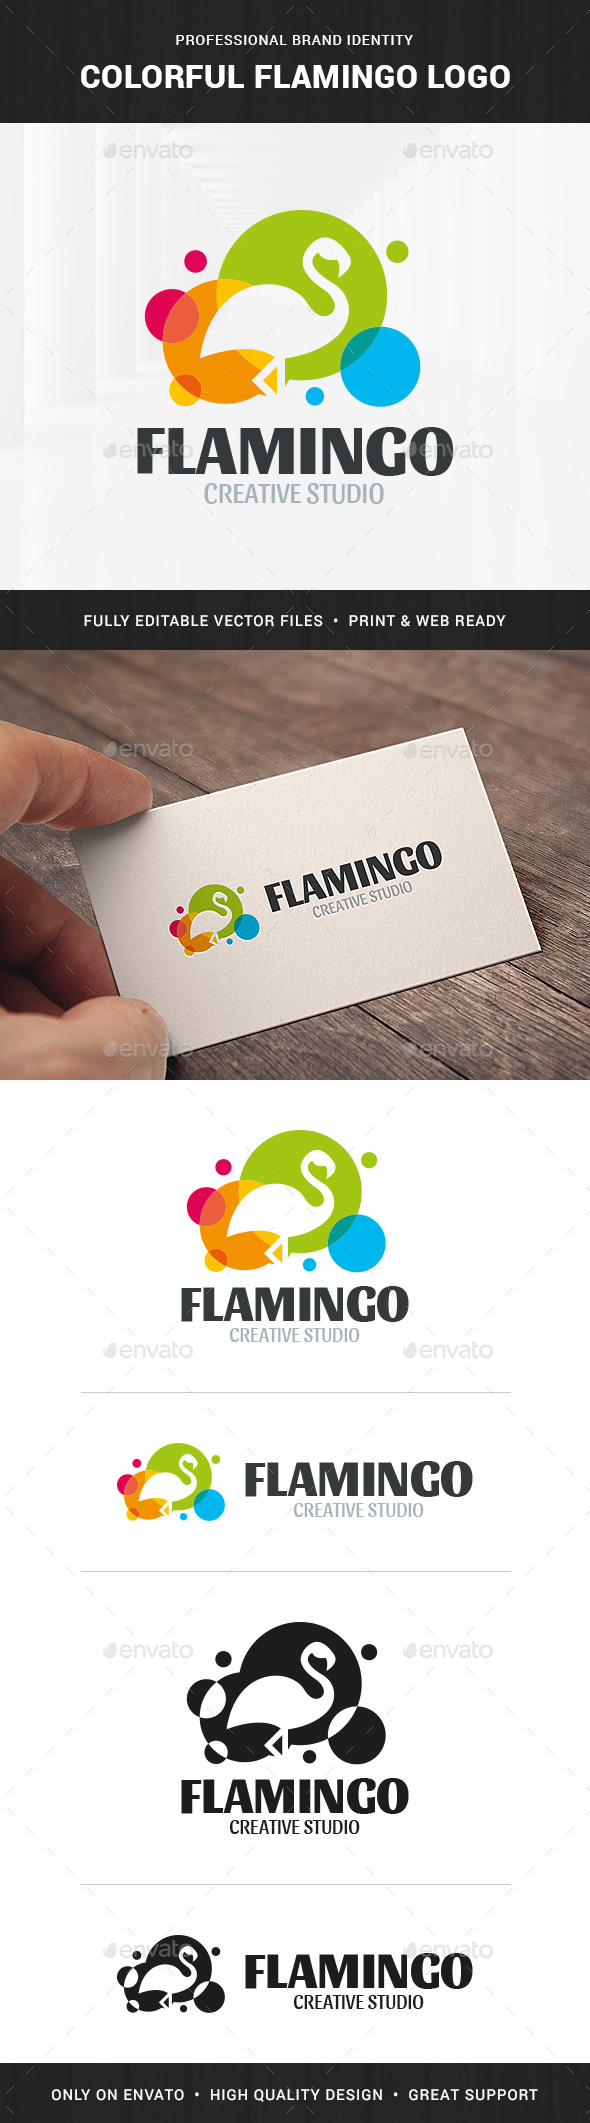 Colorful Flamingo Logo Template - Animals Logo Templates